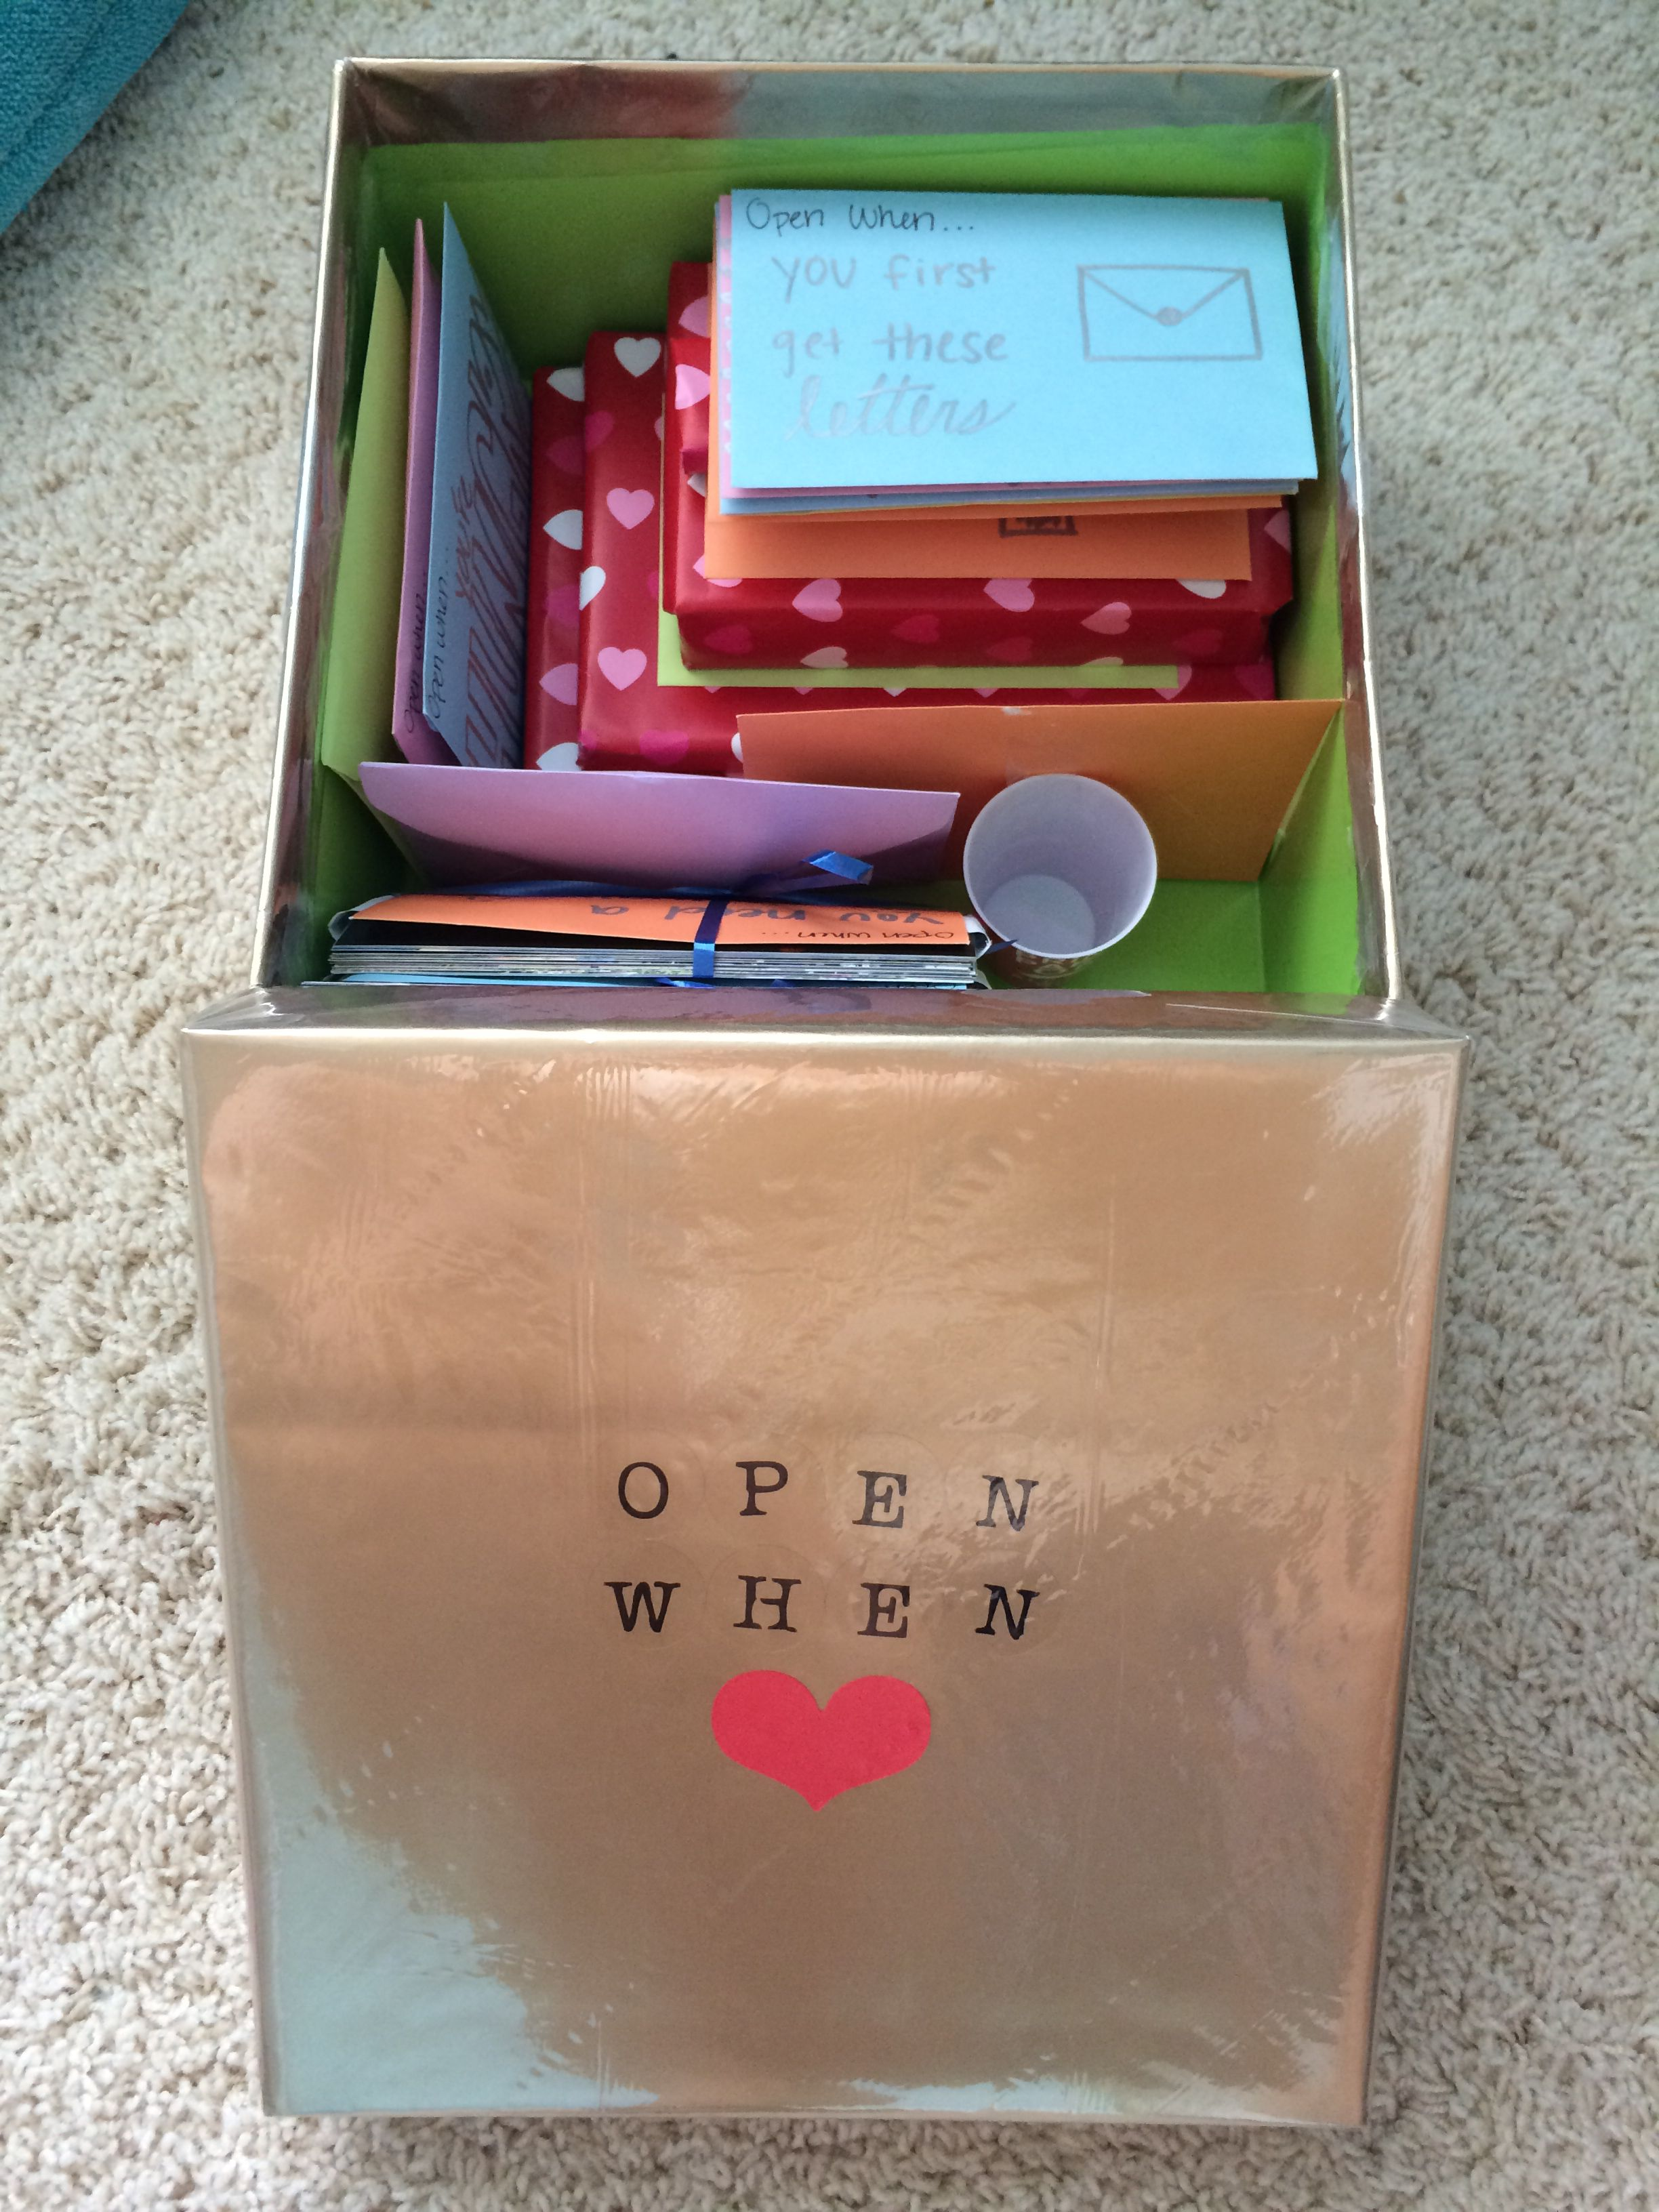 Diy Gifts For Boyfriend Birthday Open When Letters Box With Small Presents Very Cute Idea